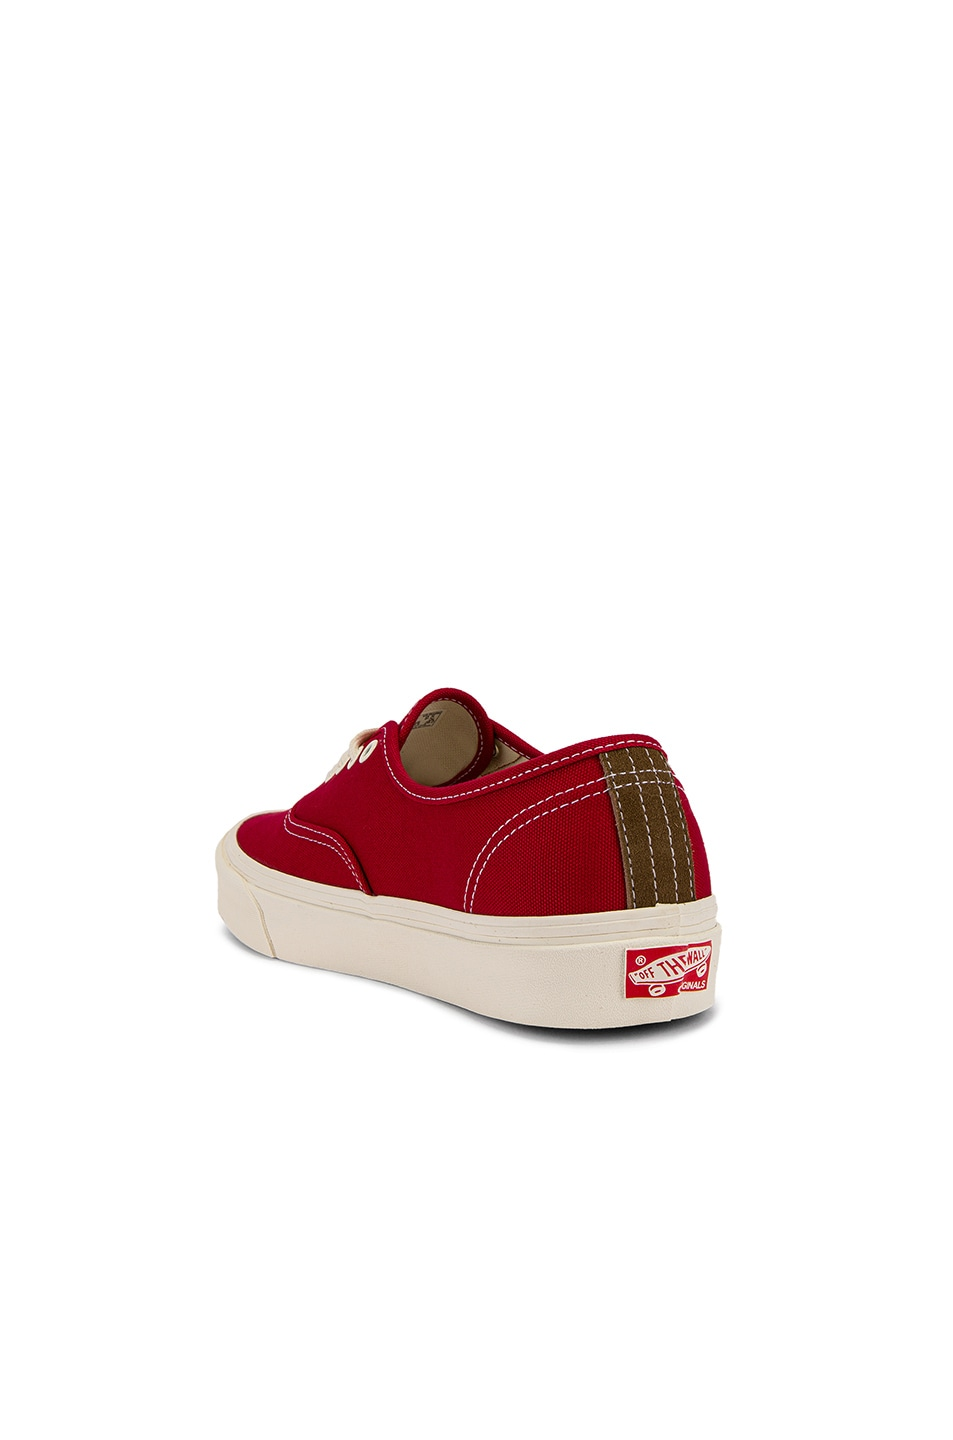 Image 3 of Vans Vault OG Authentic LX in Chili Pepper & Teak